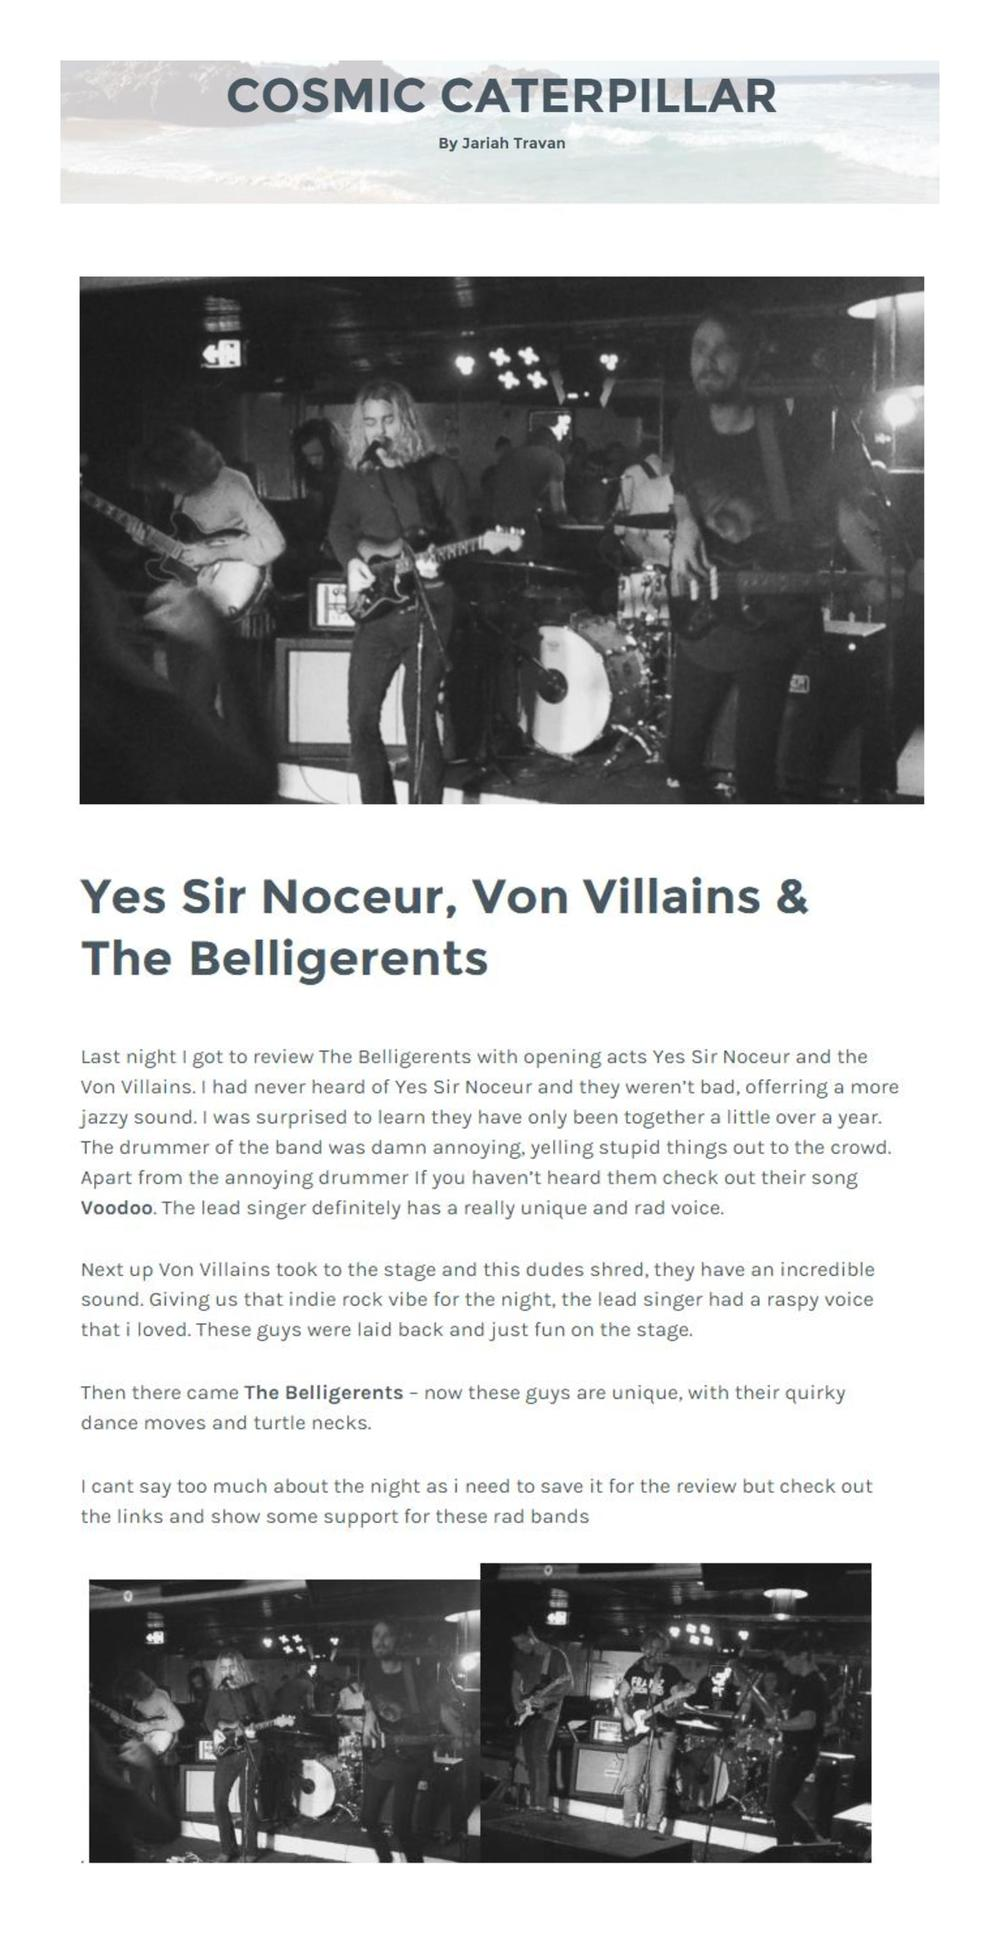 YSN - Online Press Links - Cosmic Caterpillar by Jariah Travan (Belligerents, Yes Sir Noceur, Von Villans)-page-001.jpg